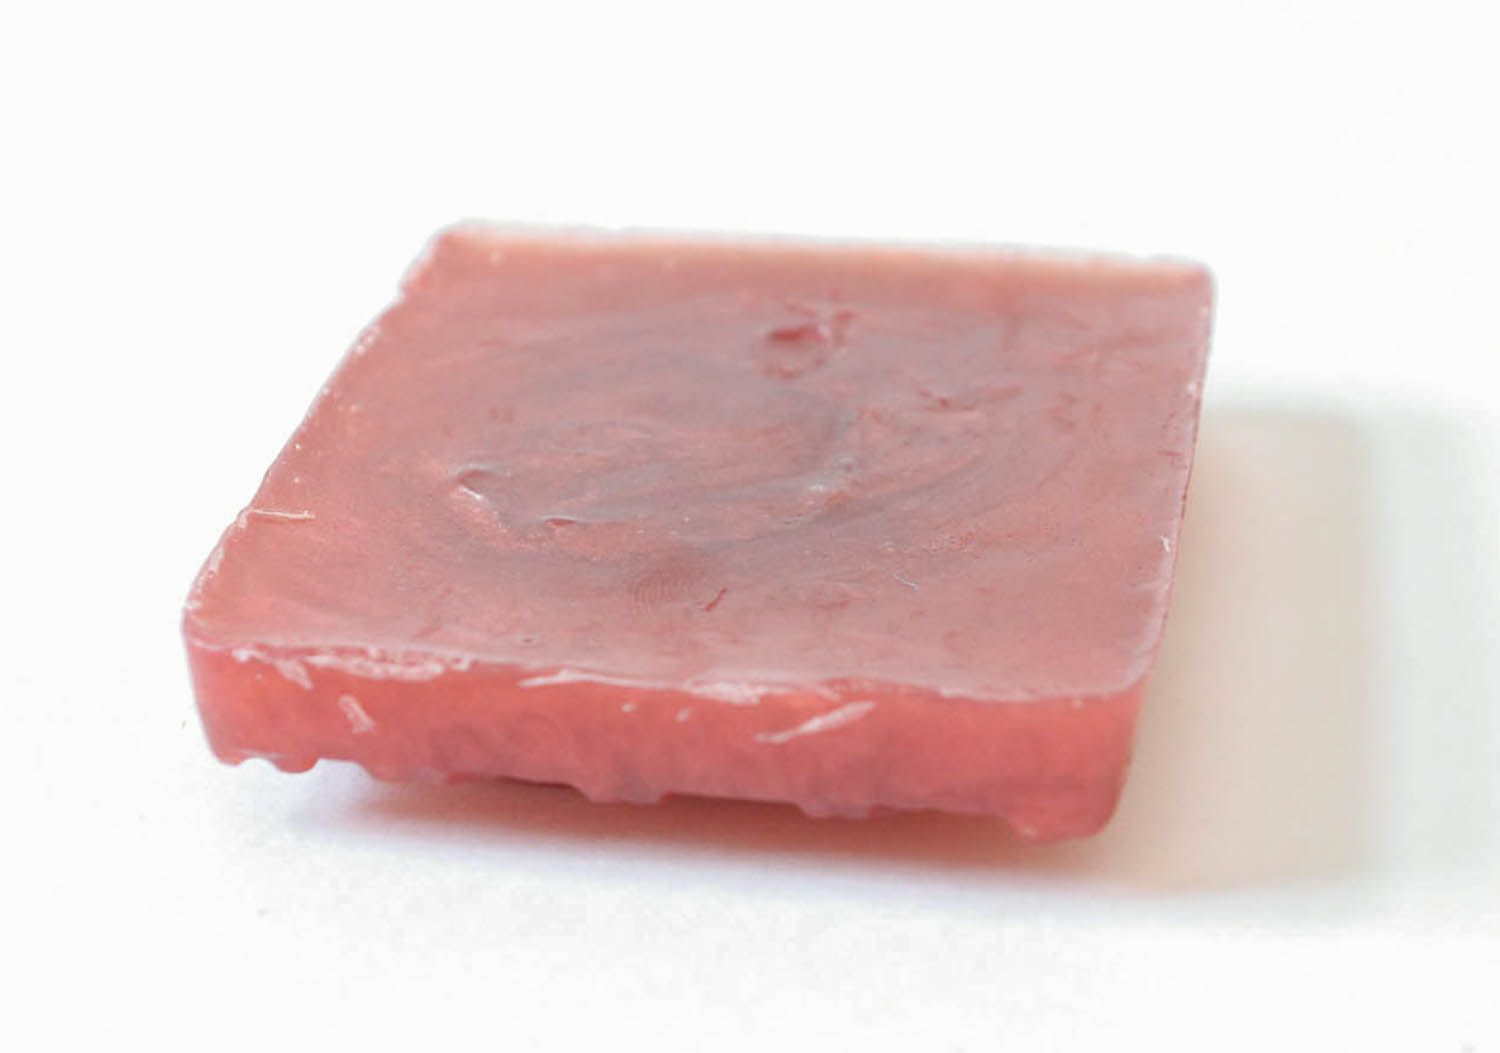 Calming soap with essential oil of St. John's wort photo 2